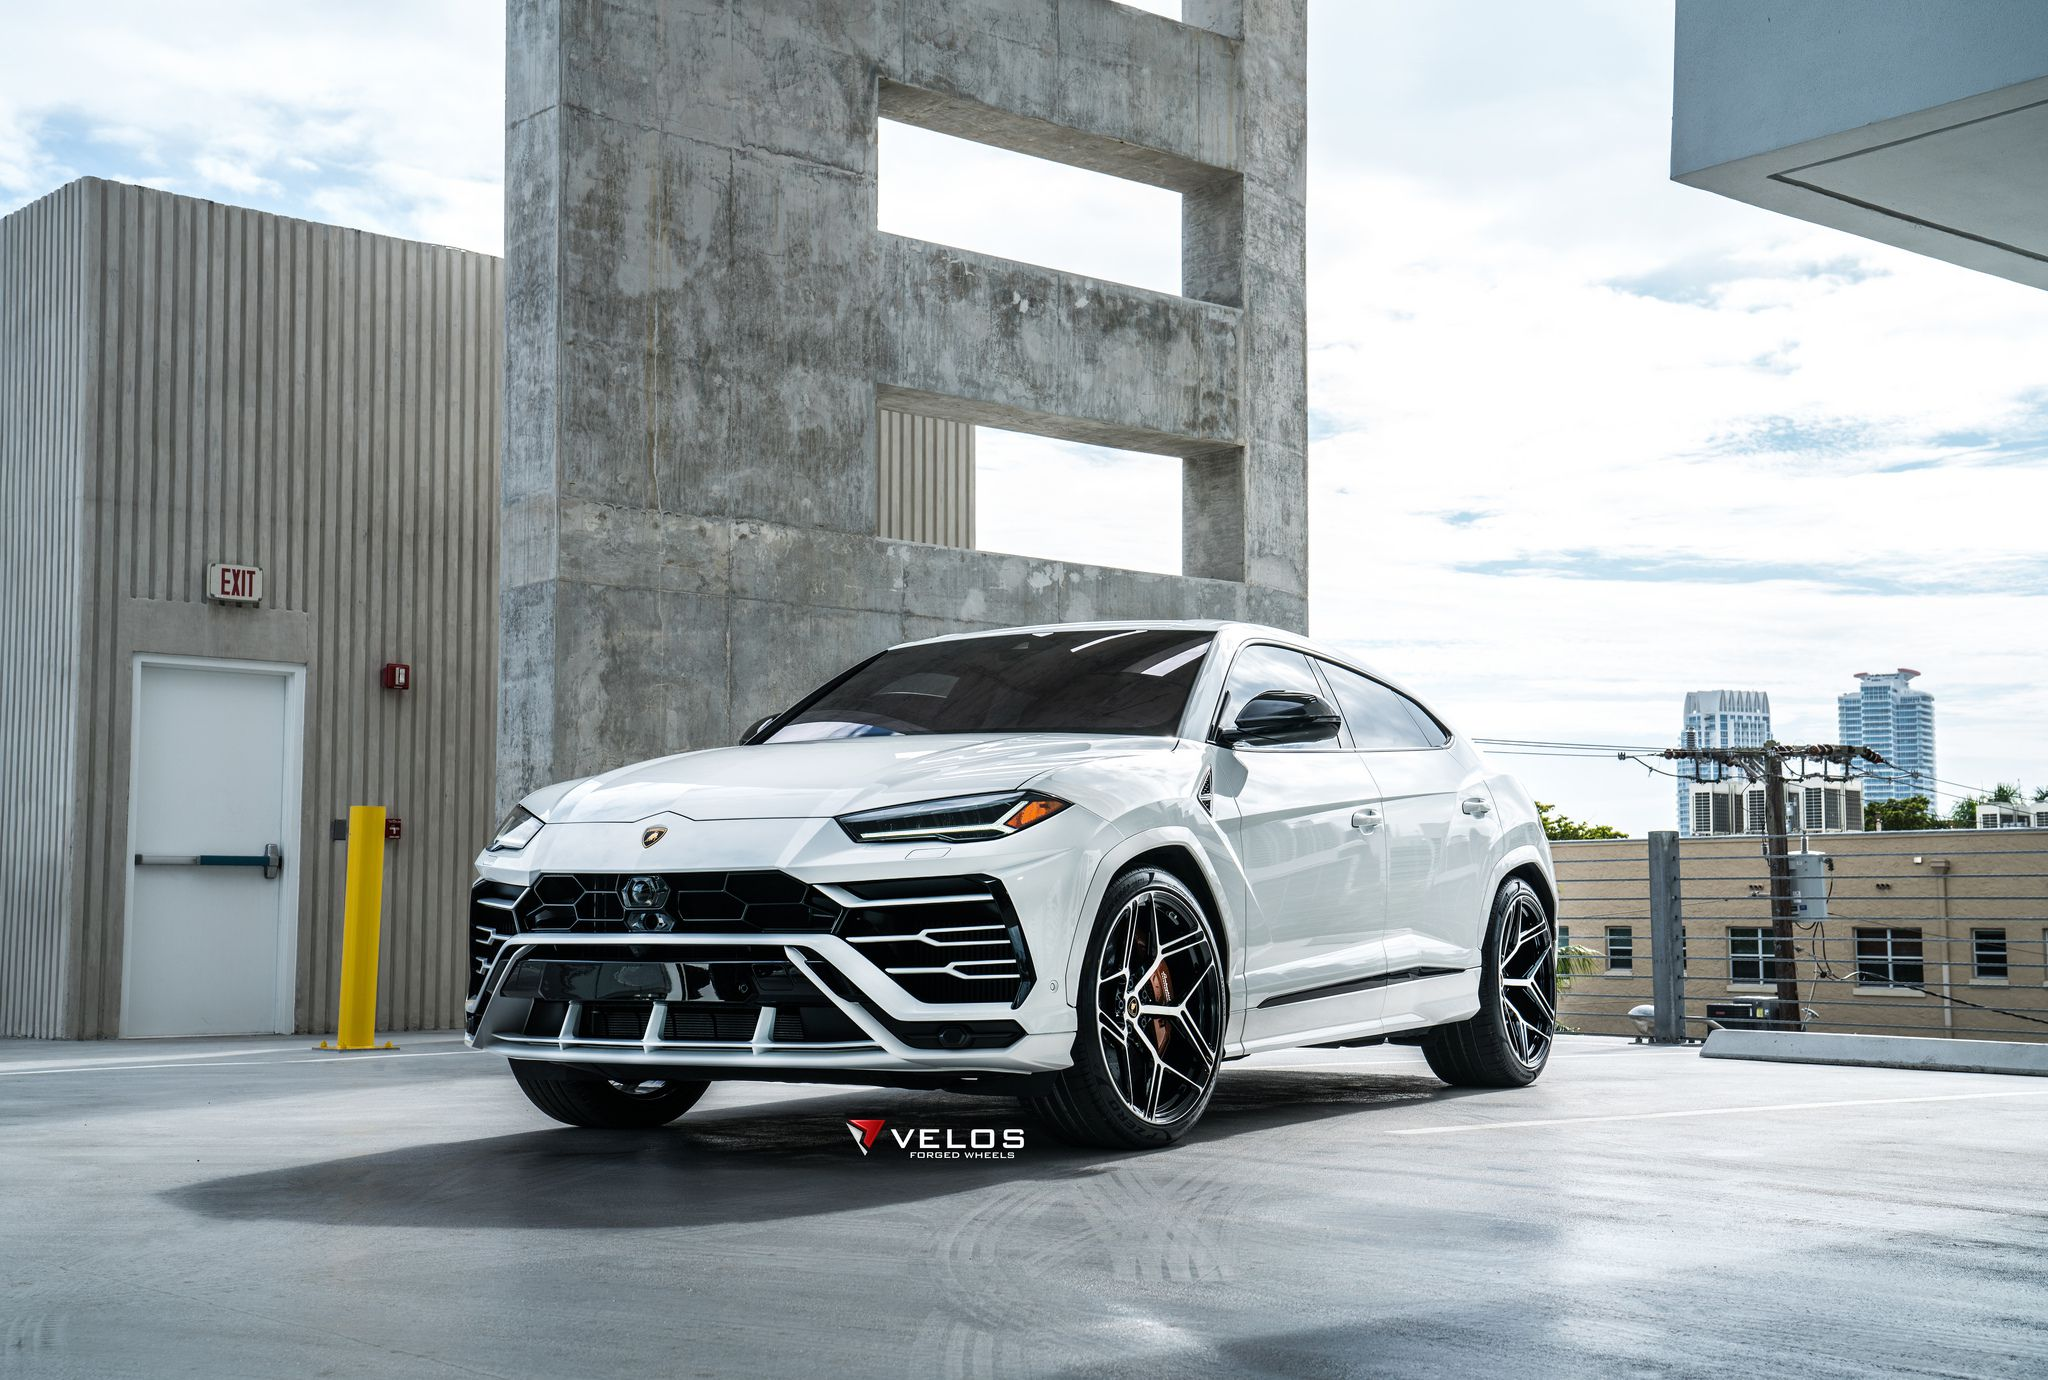 10 Lamborghini Urus High Quality Images